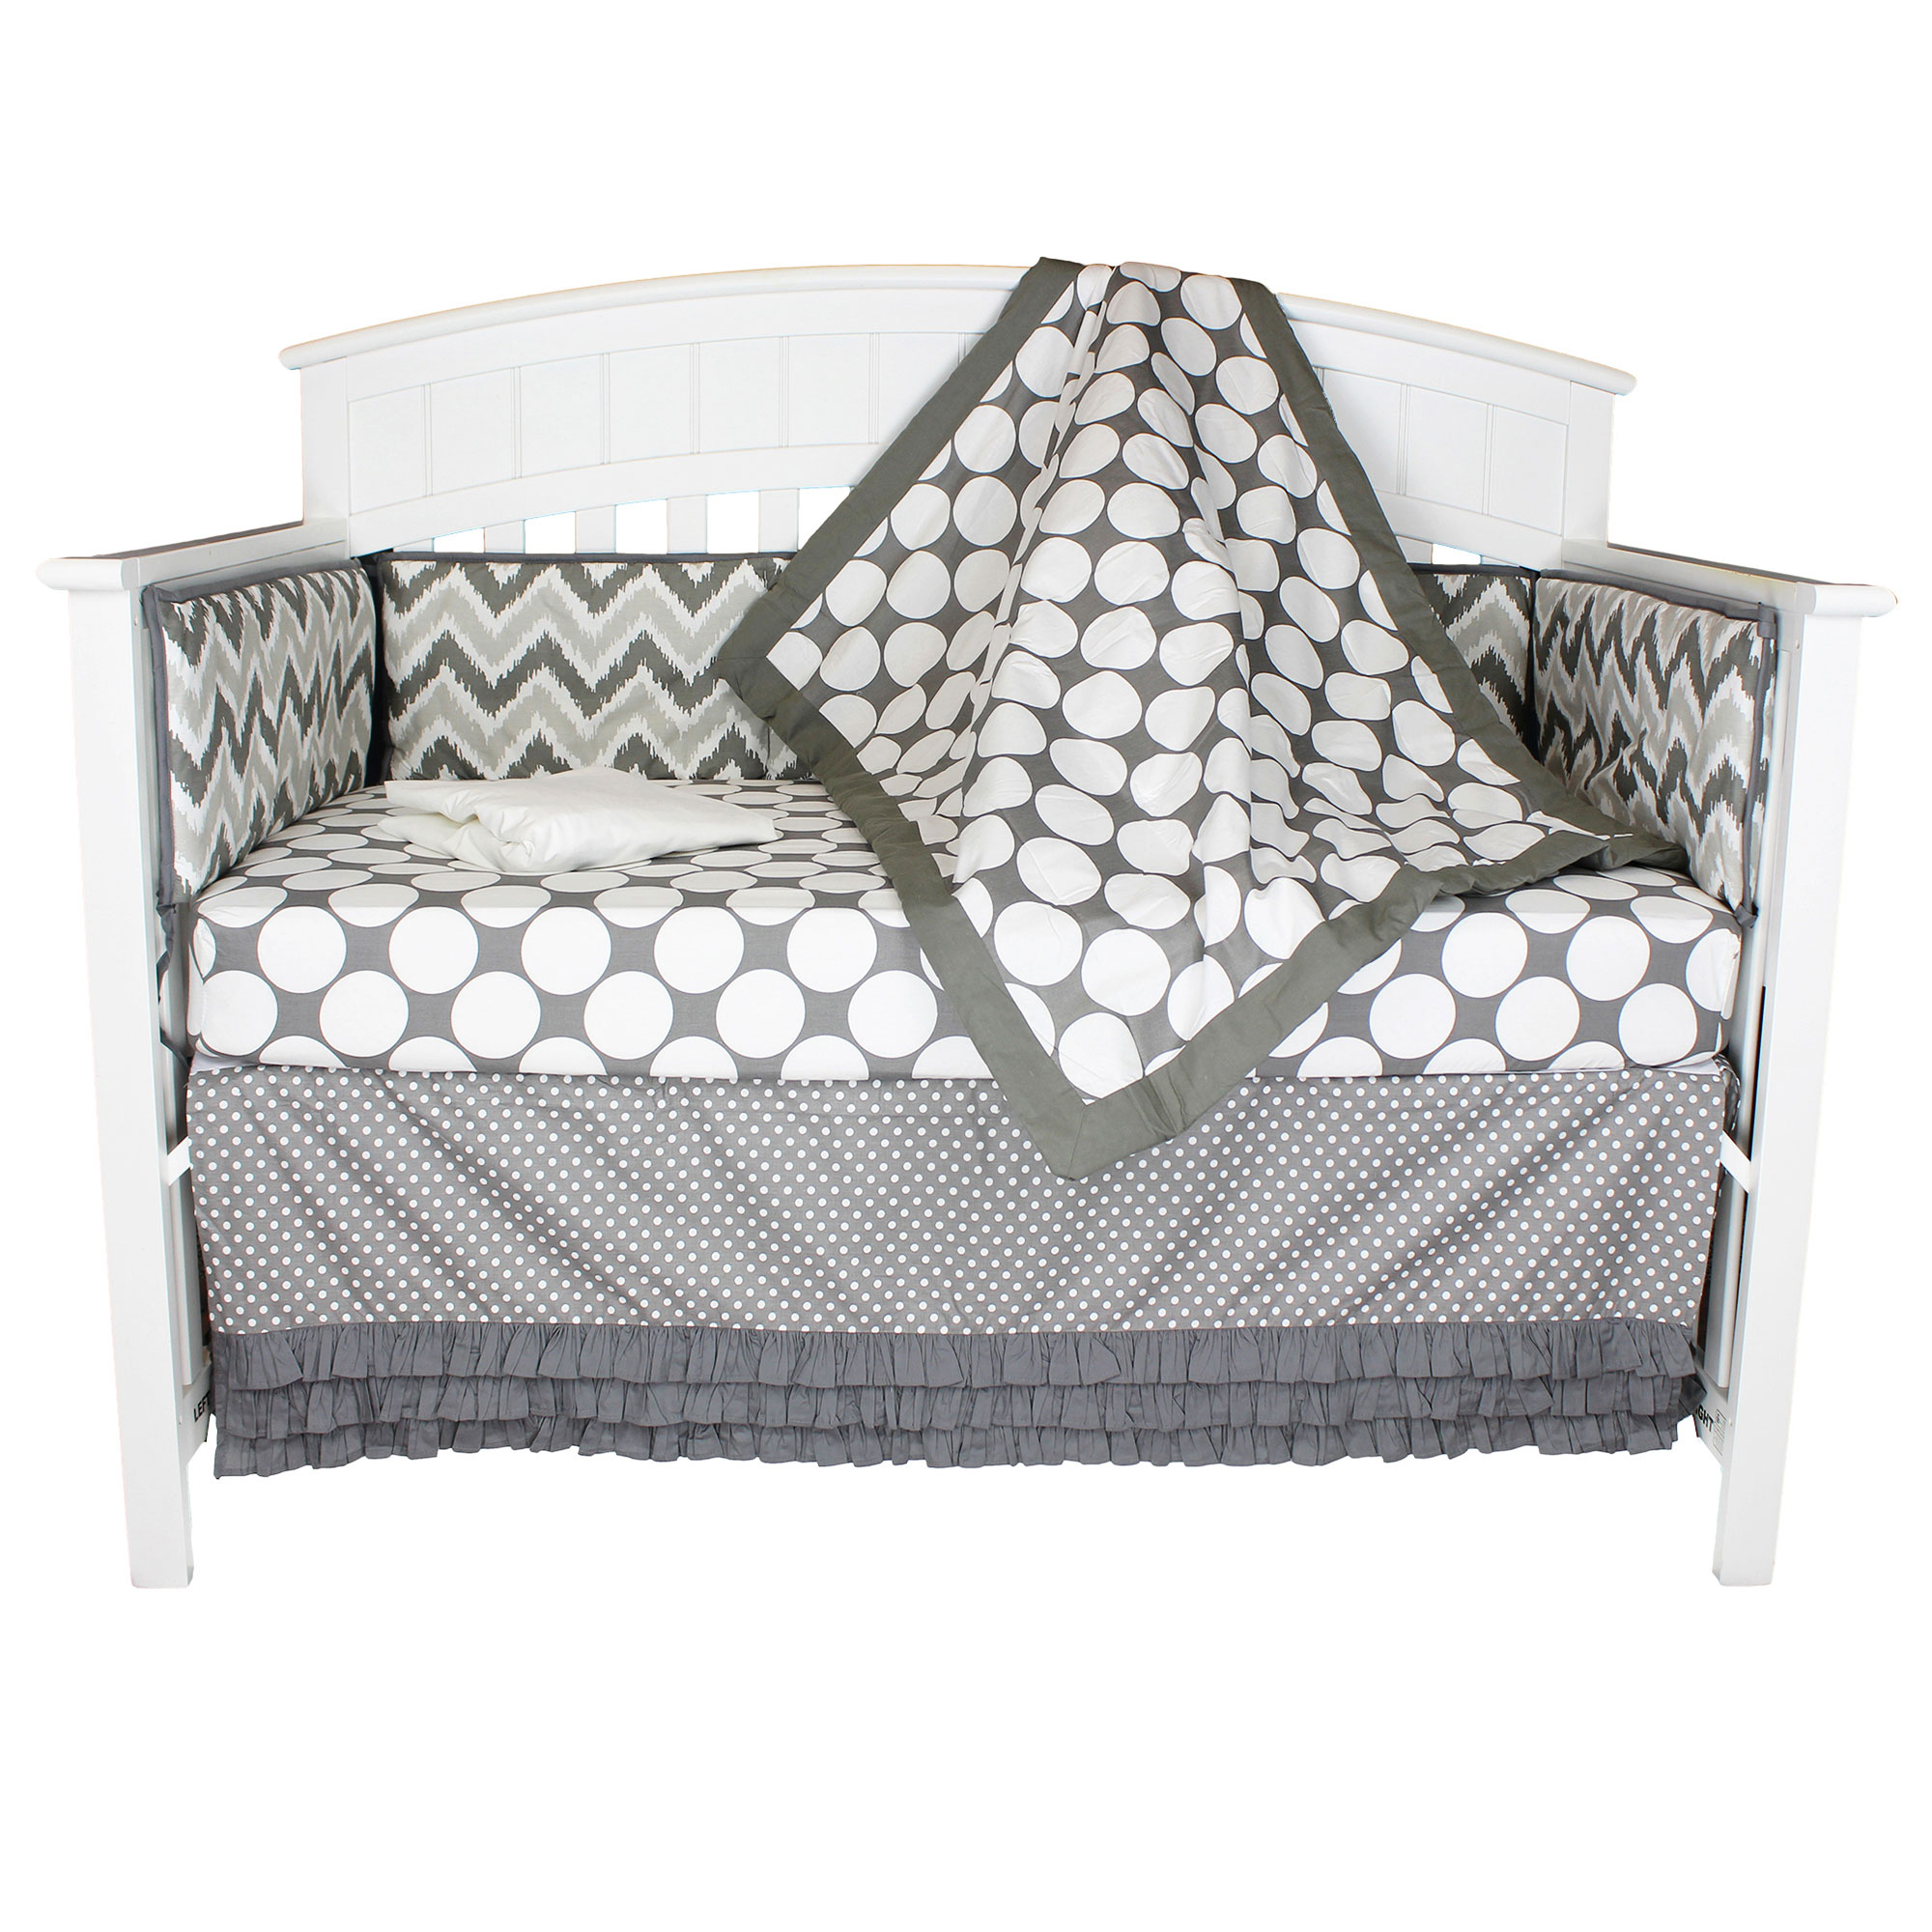 Bacati Crib Bedding Set - Grey and White Chevron and Dots - 100% Cotton 5 Piece Baby Bedding Collection